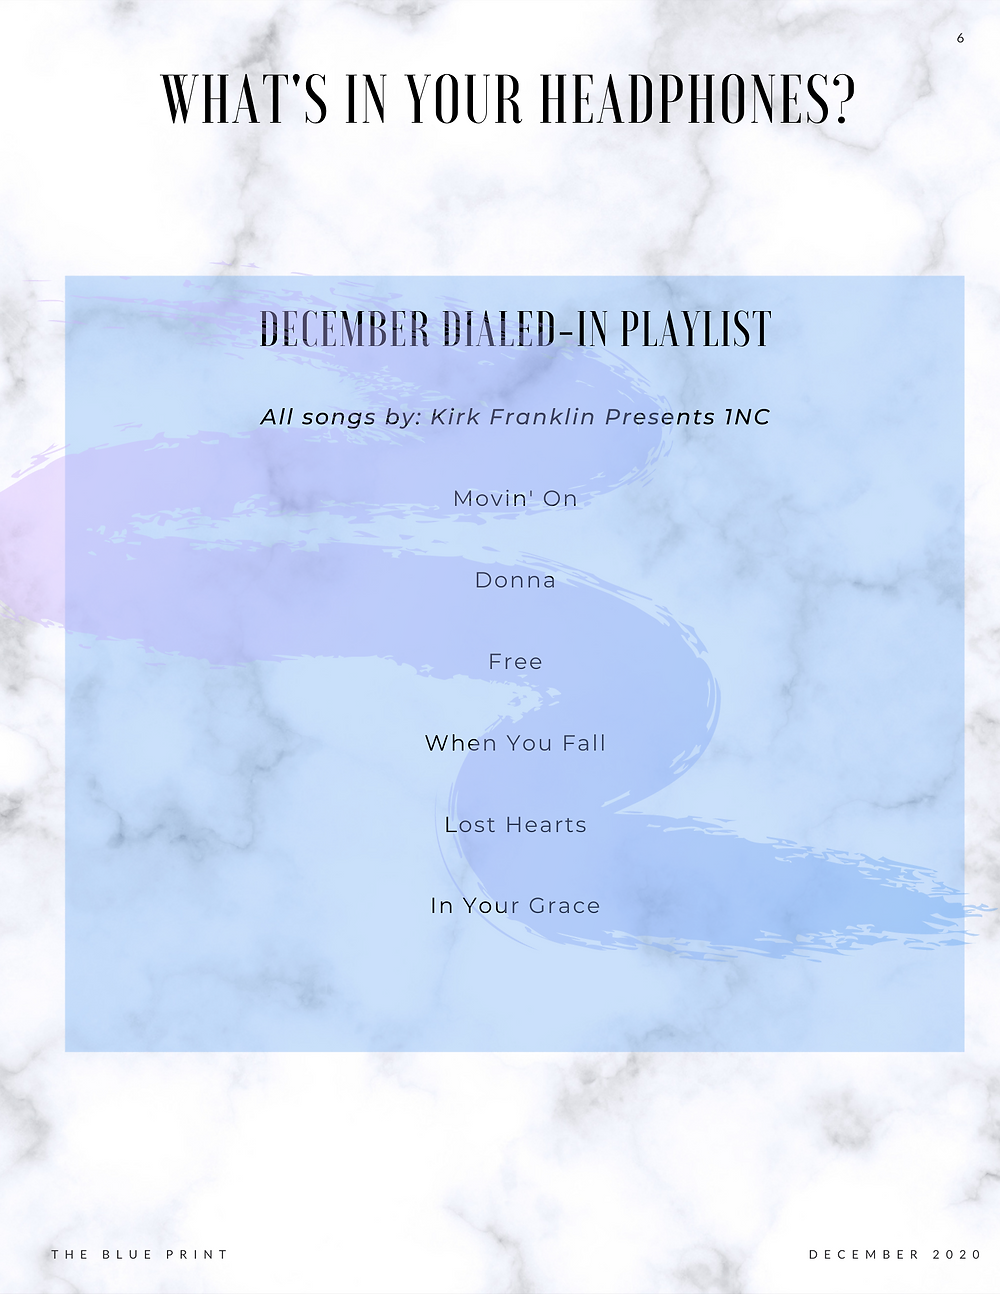 December Dialed-In Playlist